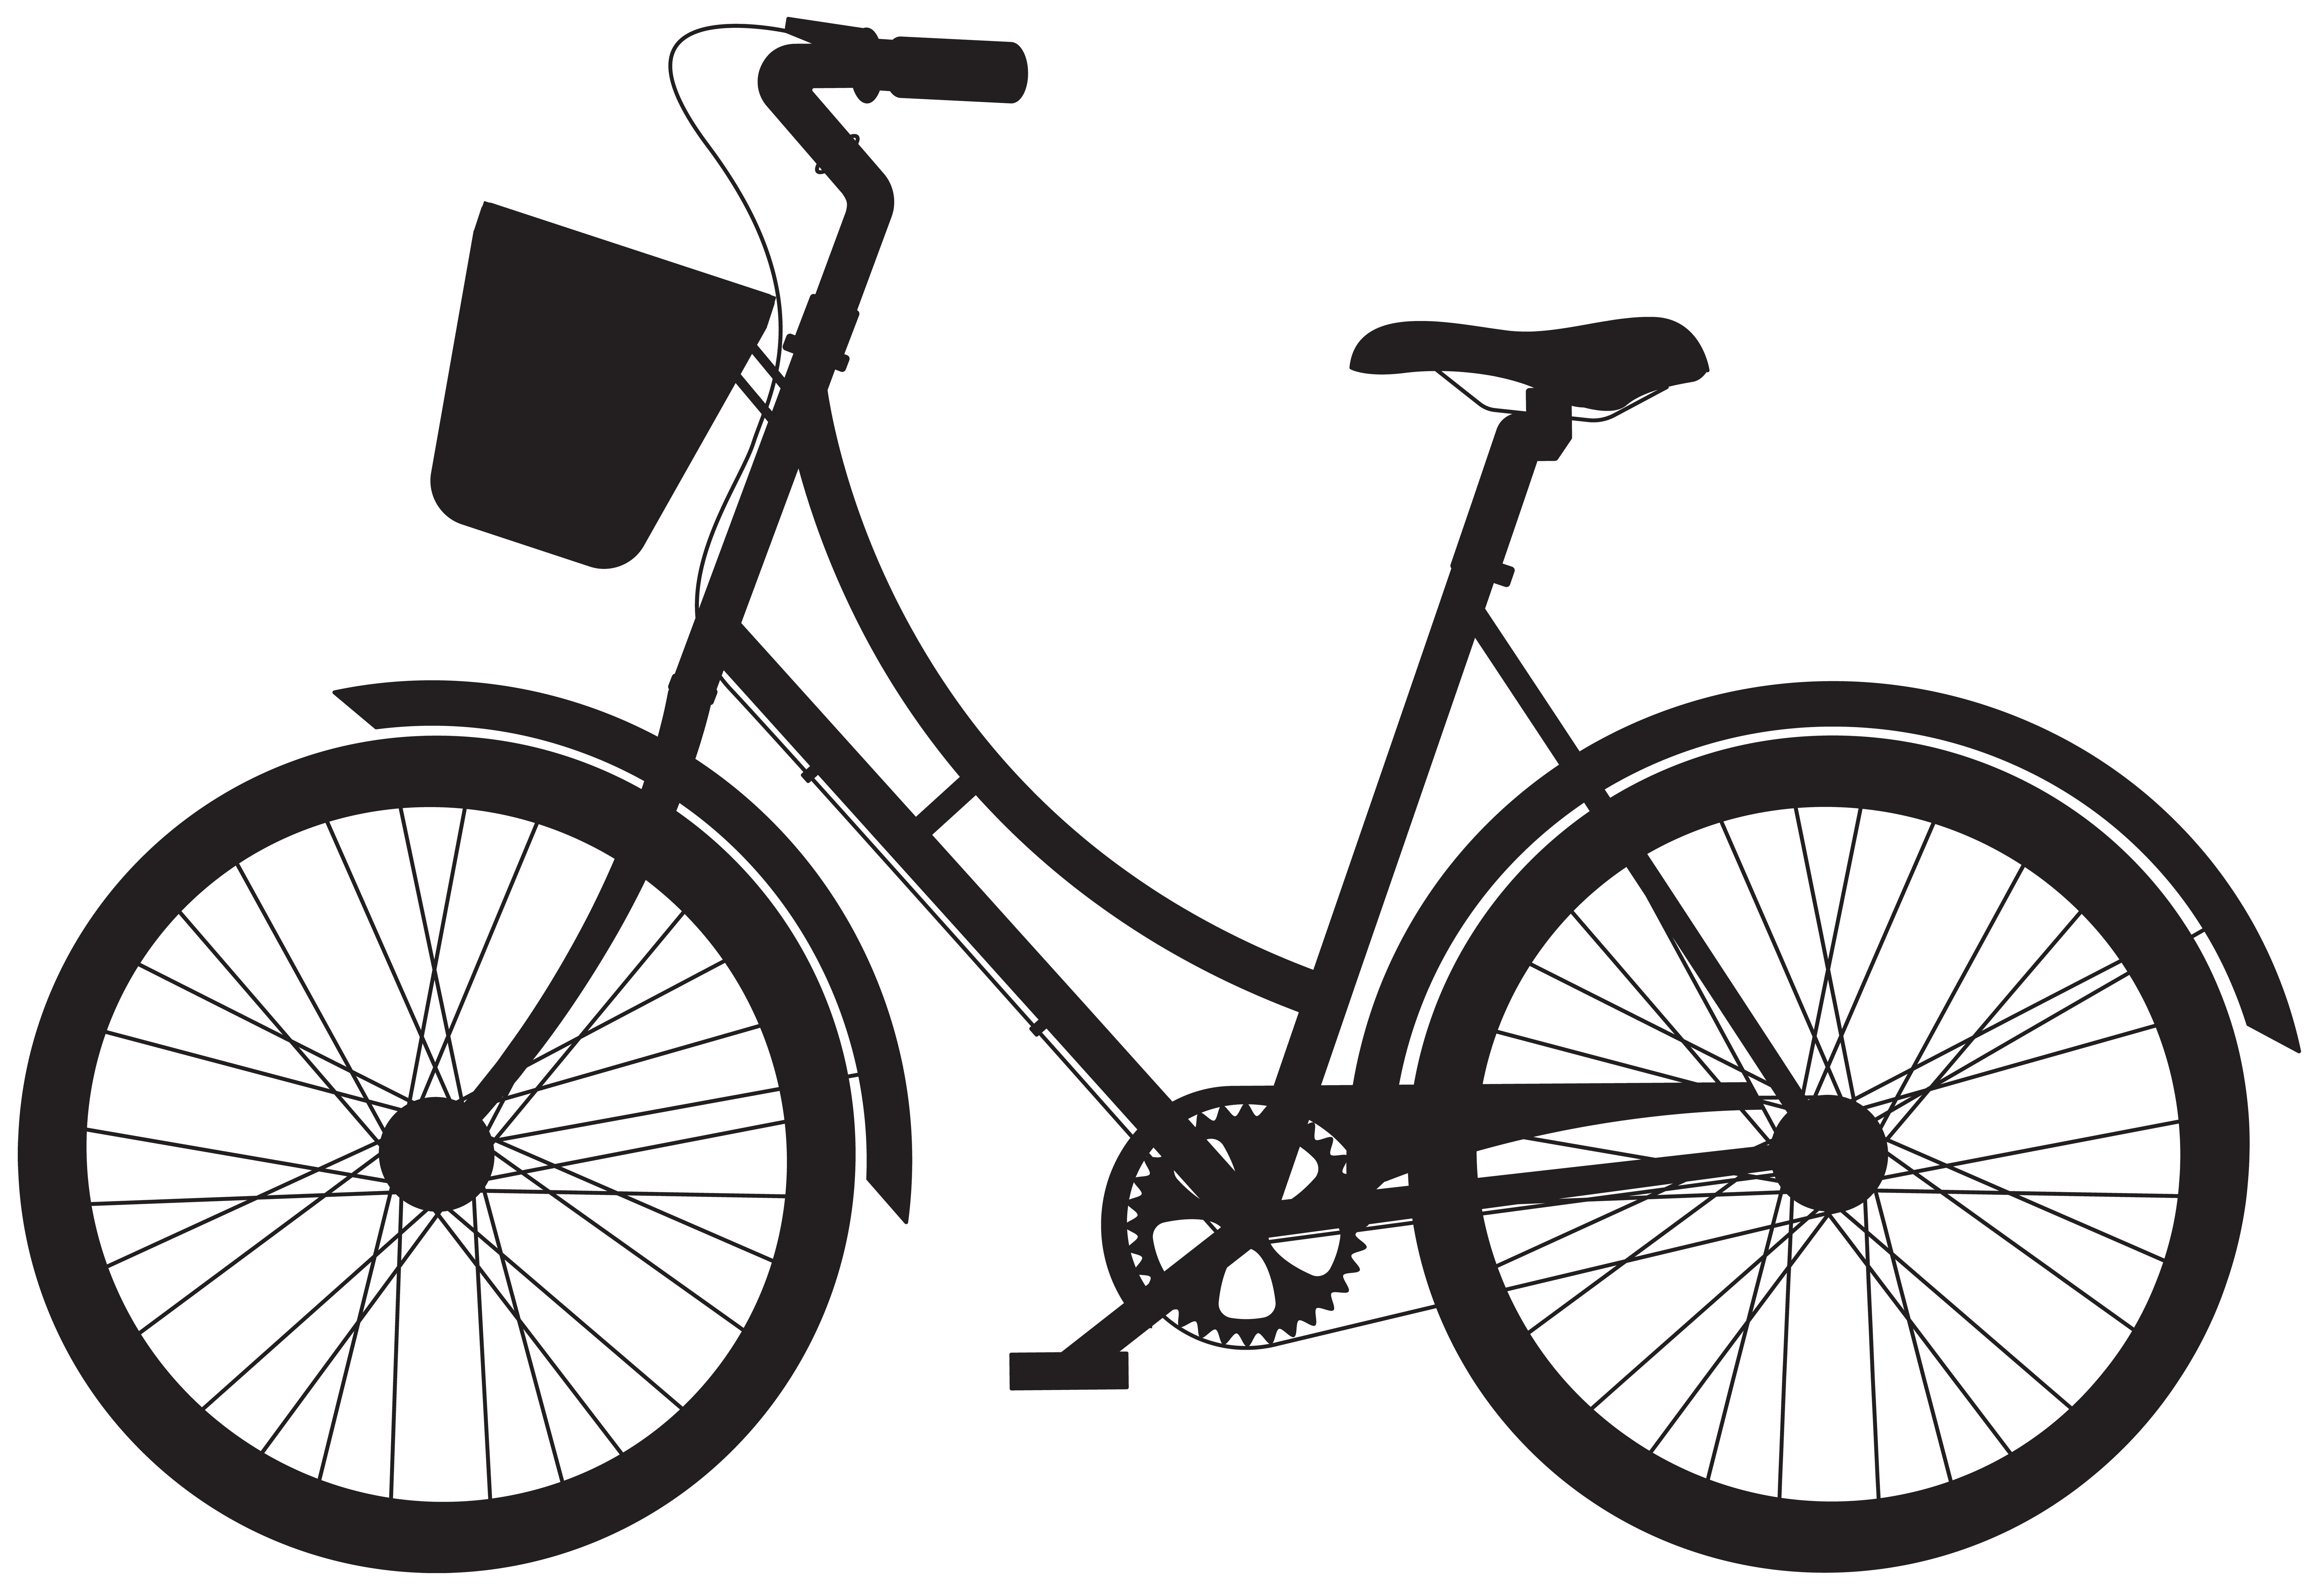 Bicycle with flower basket clipart clip freeuse stock Bicycle with Basket Silhouette PNG Clip Art | Gallery Yopriceville ... clip freeuse stock